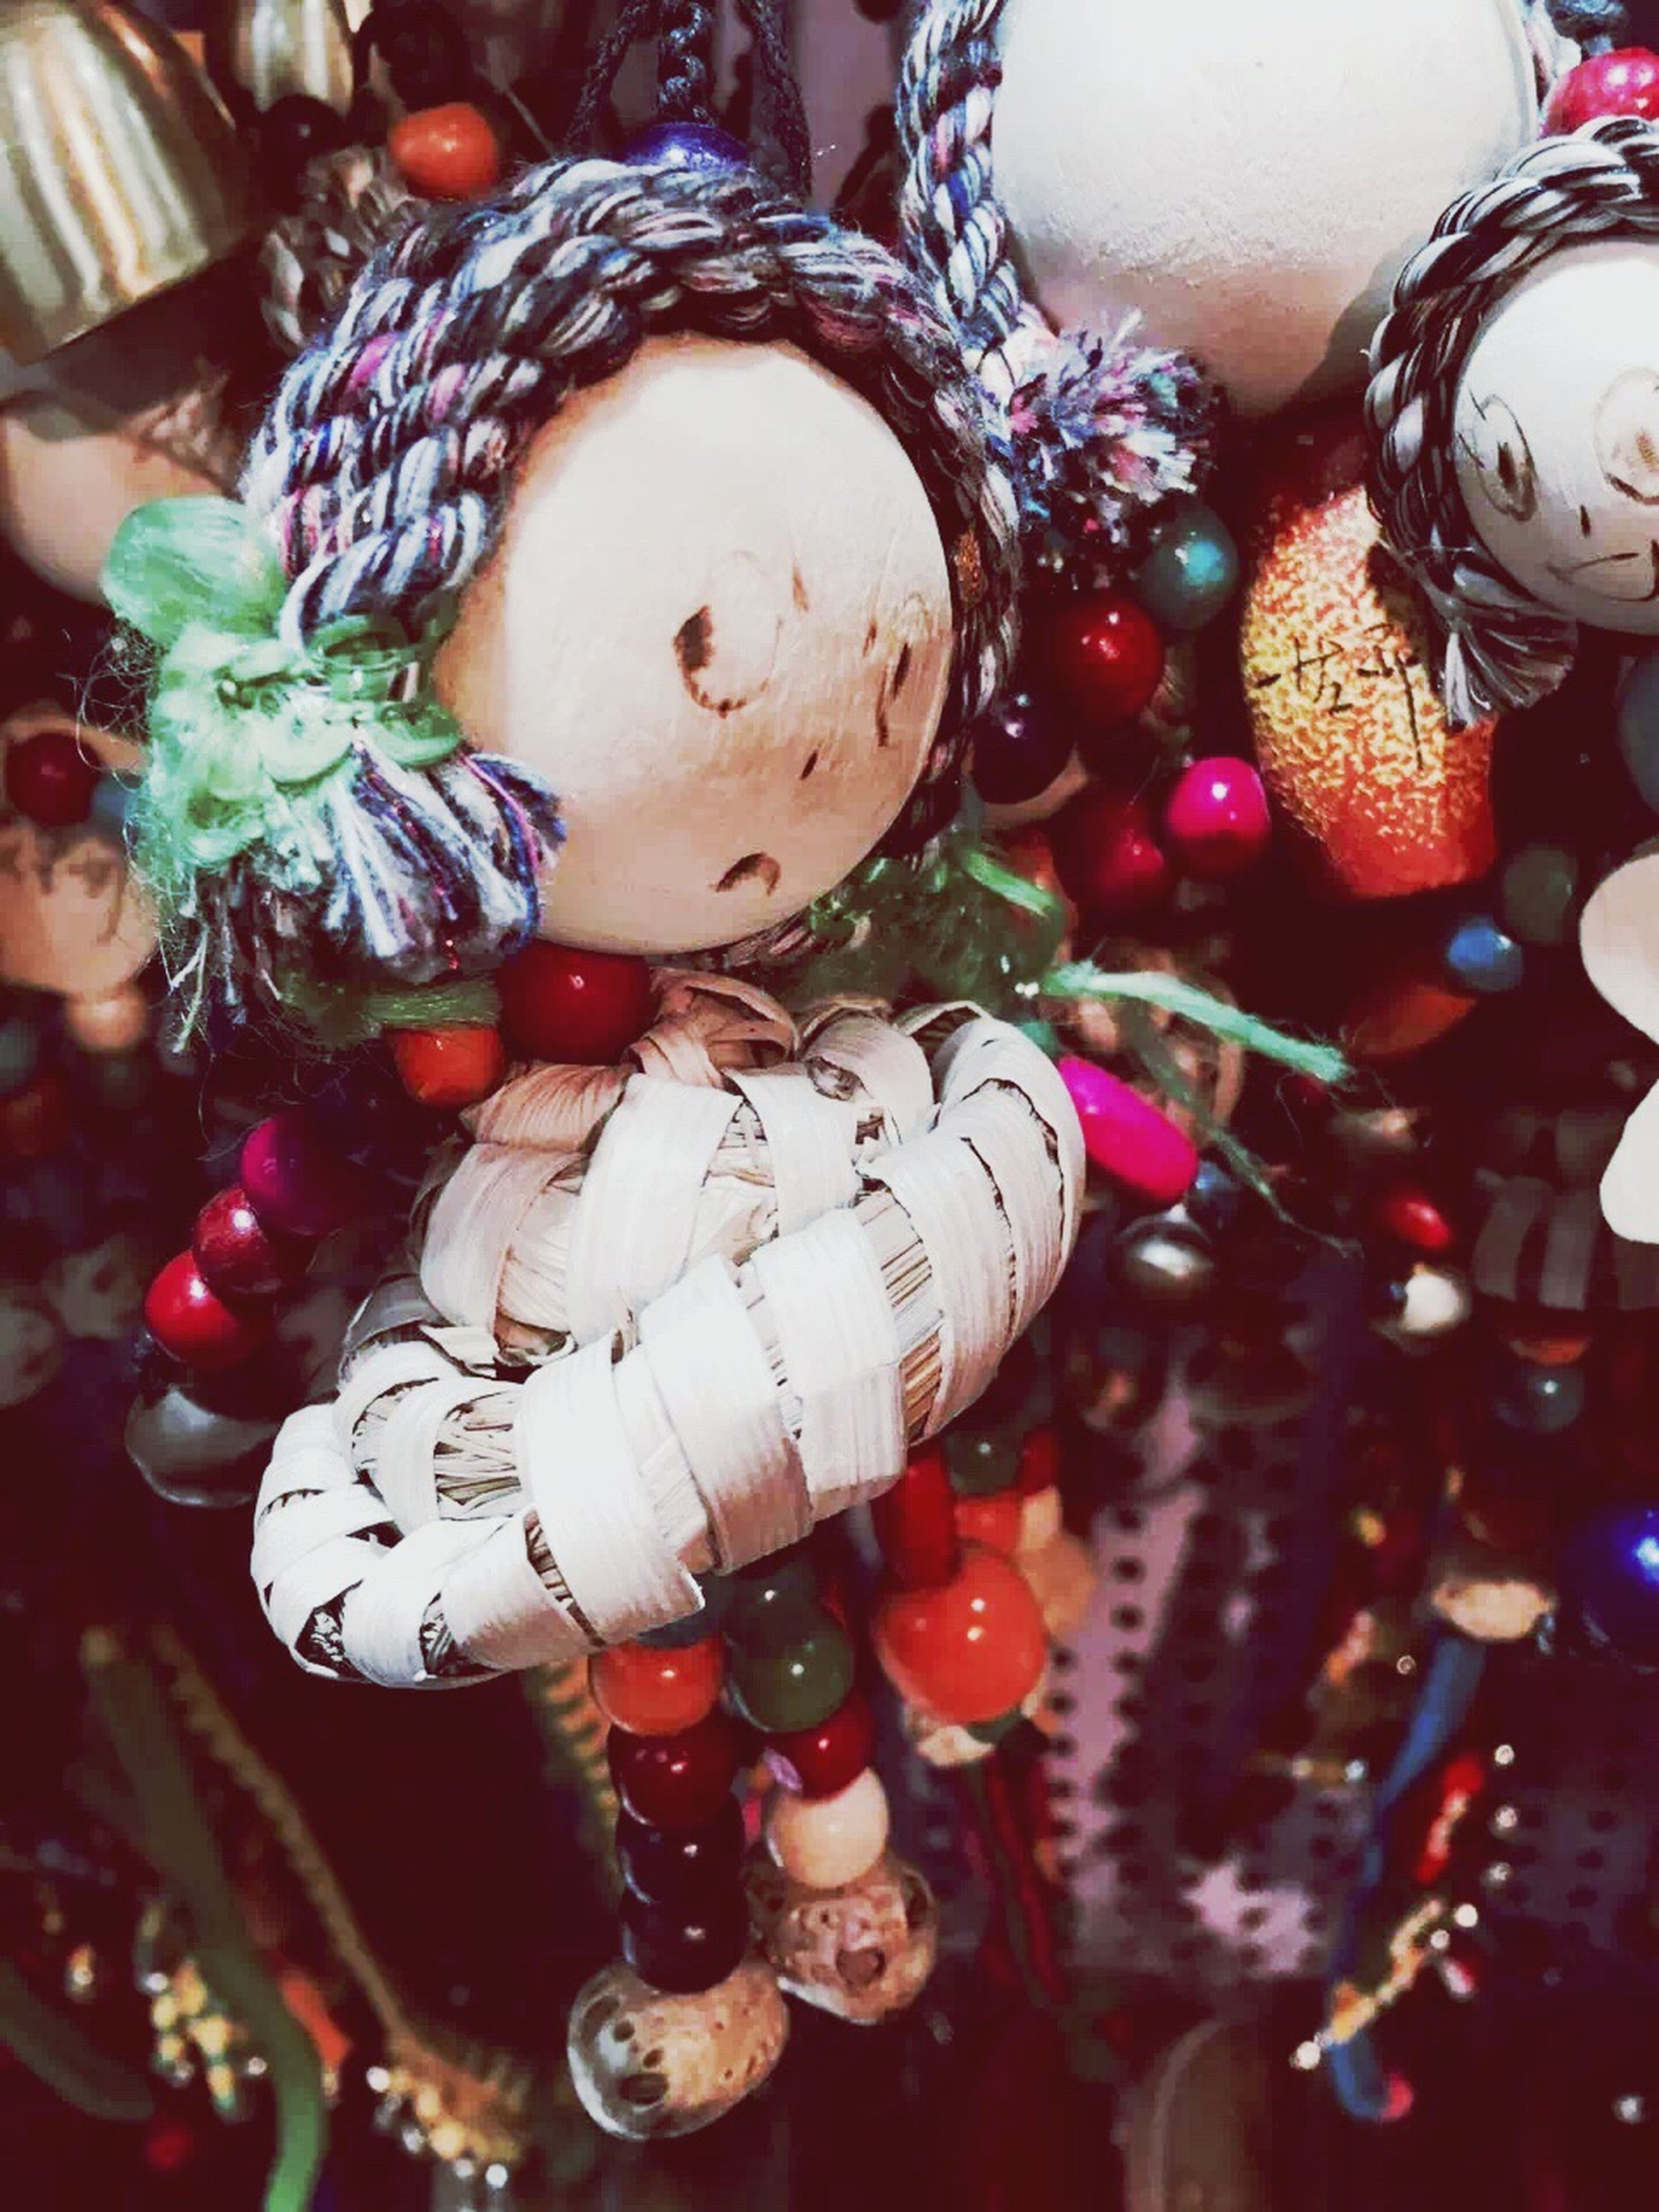 large group of objects, hanging, tradition, religion, cultures, abundance, close-up, indoors, still life, celebration, variation, selective focus, christmas ornament, multi colored, holiday, luck, bunch, holiday - event, full frame, no people, heap, merchandise, red, celebration event, extreme close up